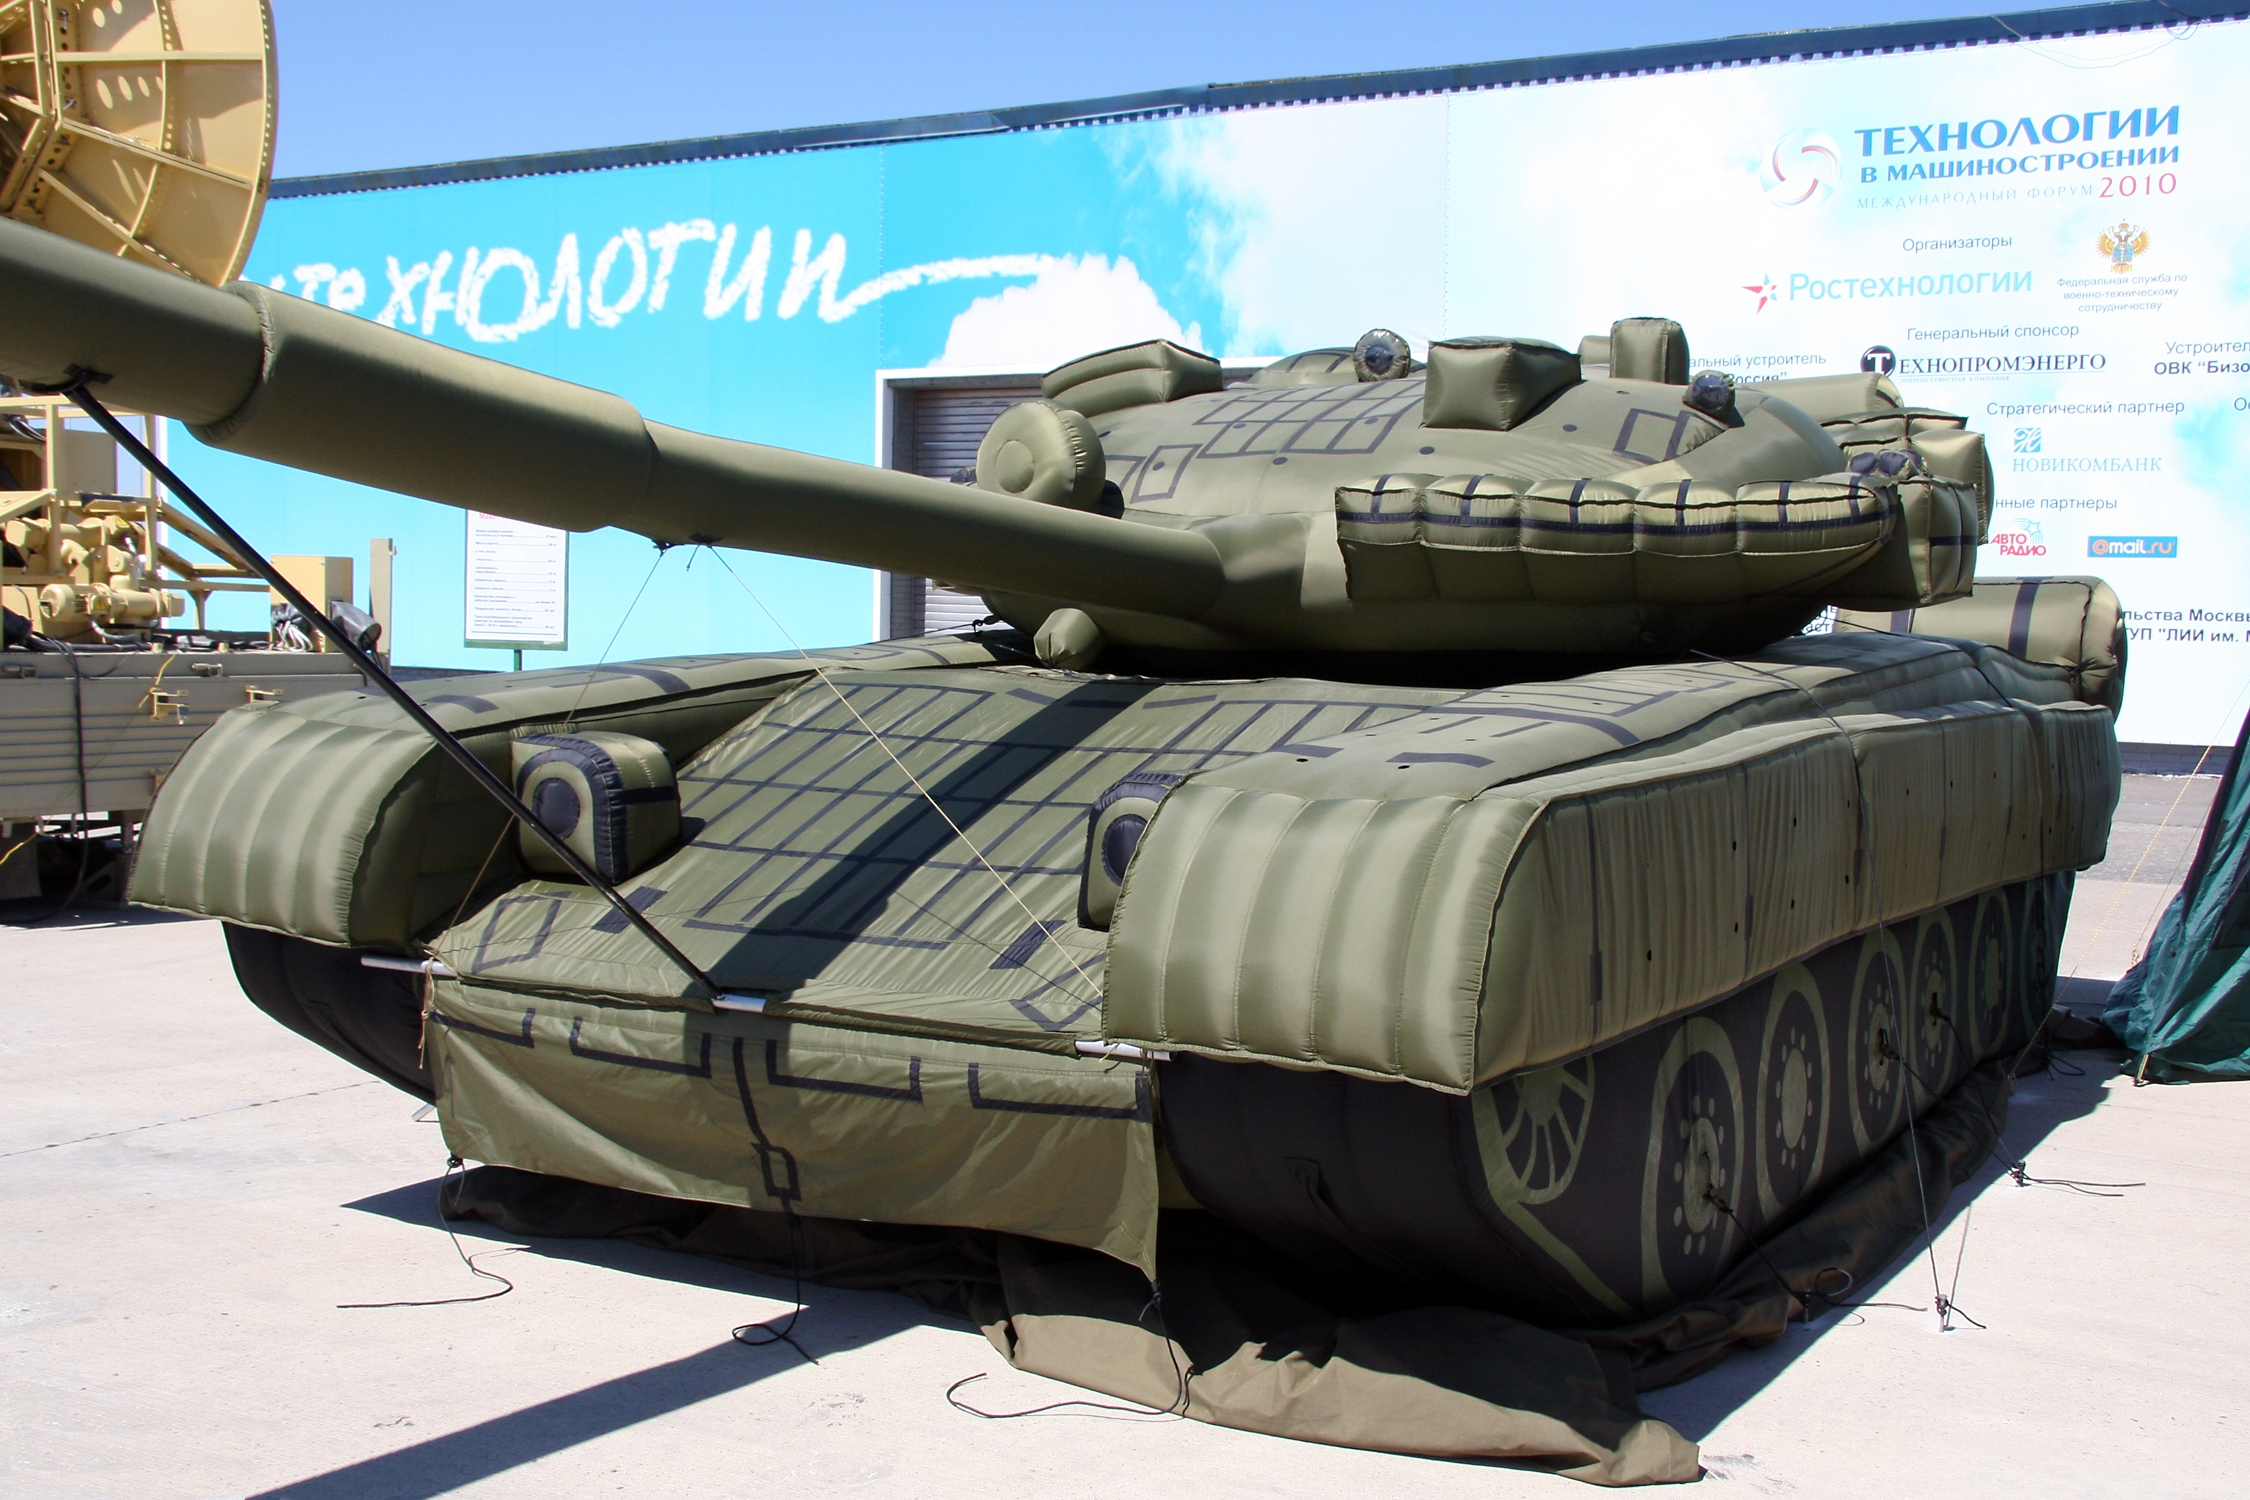 http://upload.wikimedia.org/wikipedia/commons/c/c6/Inflatable_T-80BV_mock-up.jpg